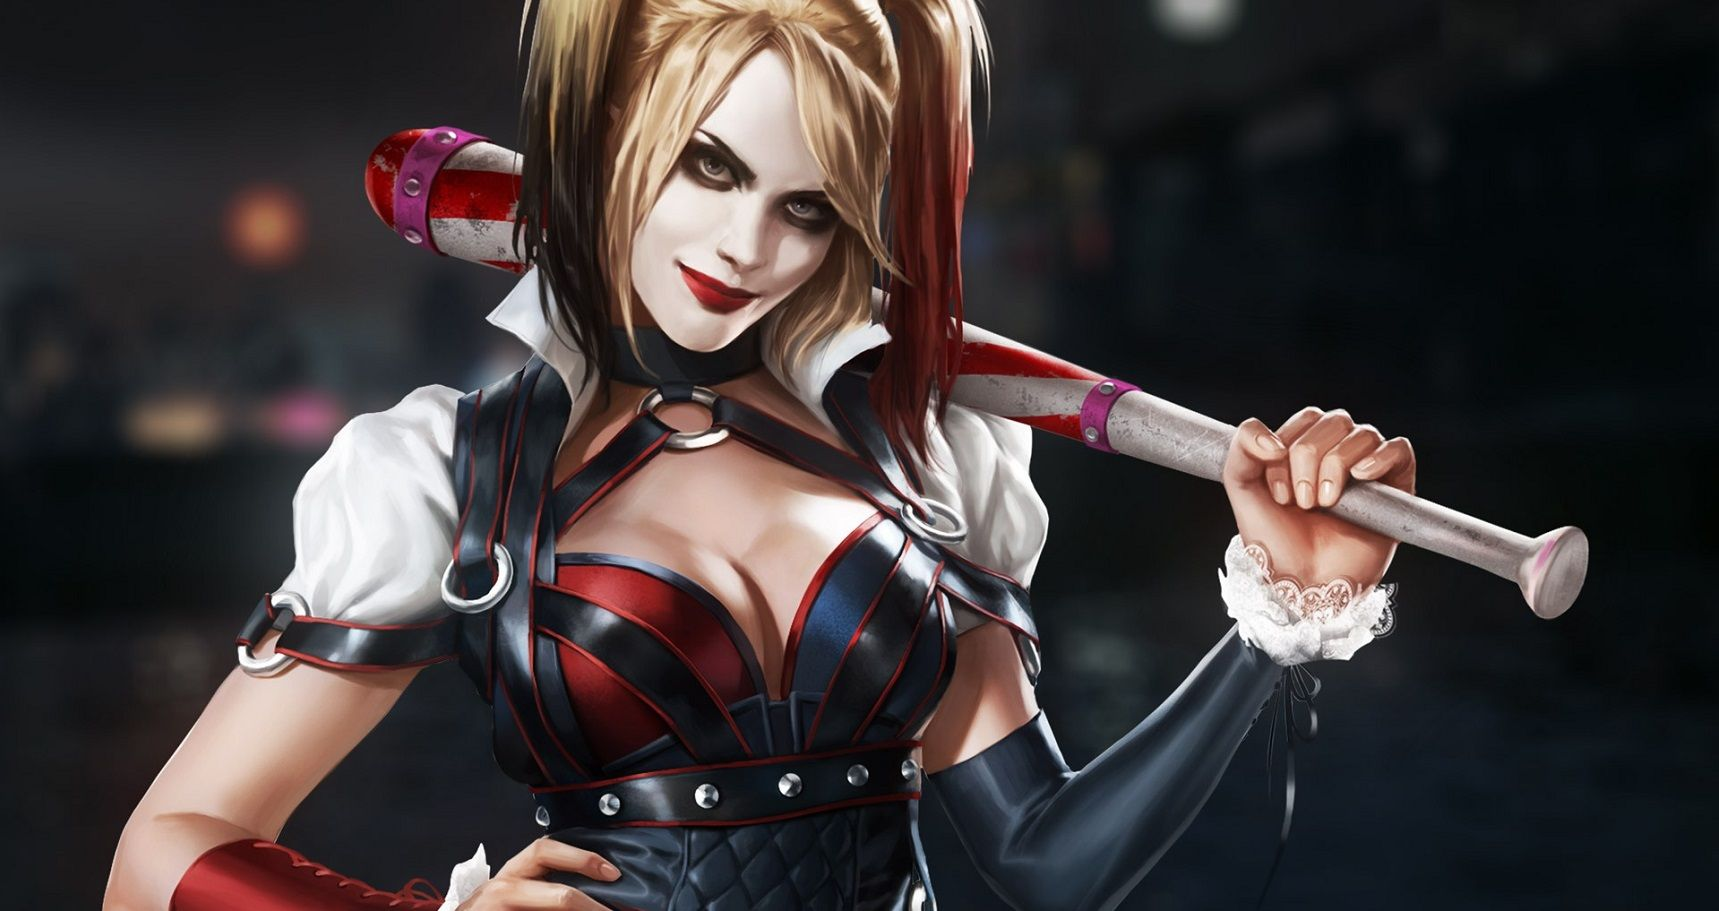 15 Things You Didn't Know About Harley Quinn